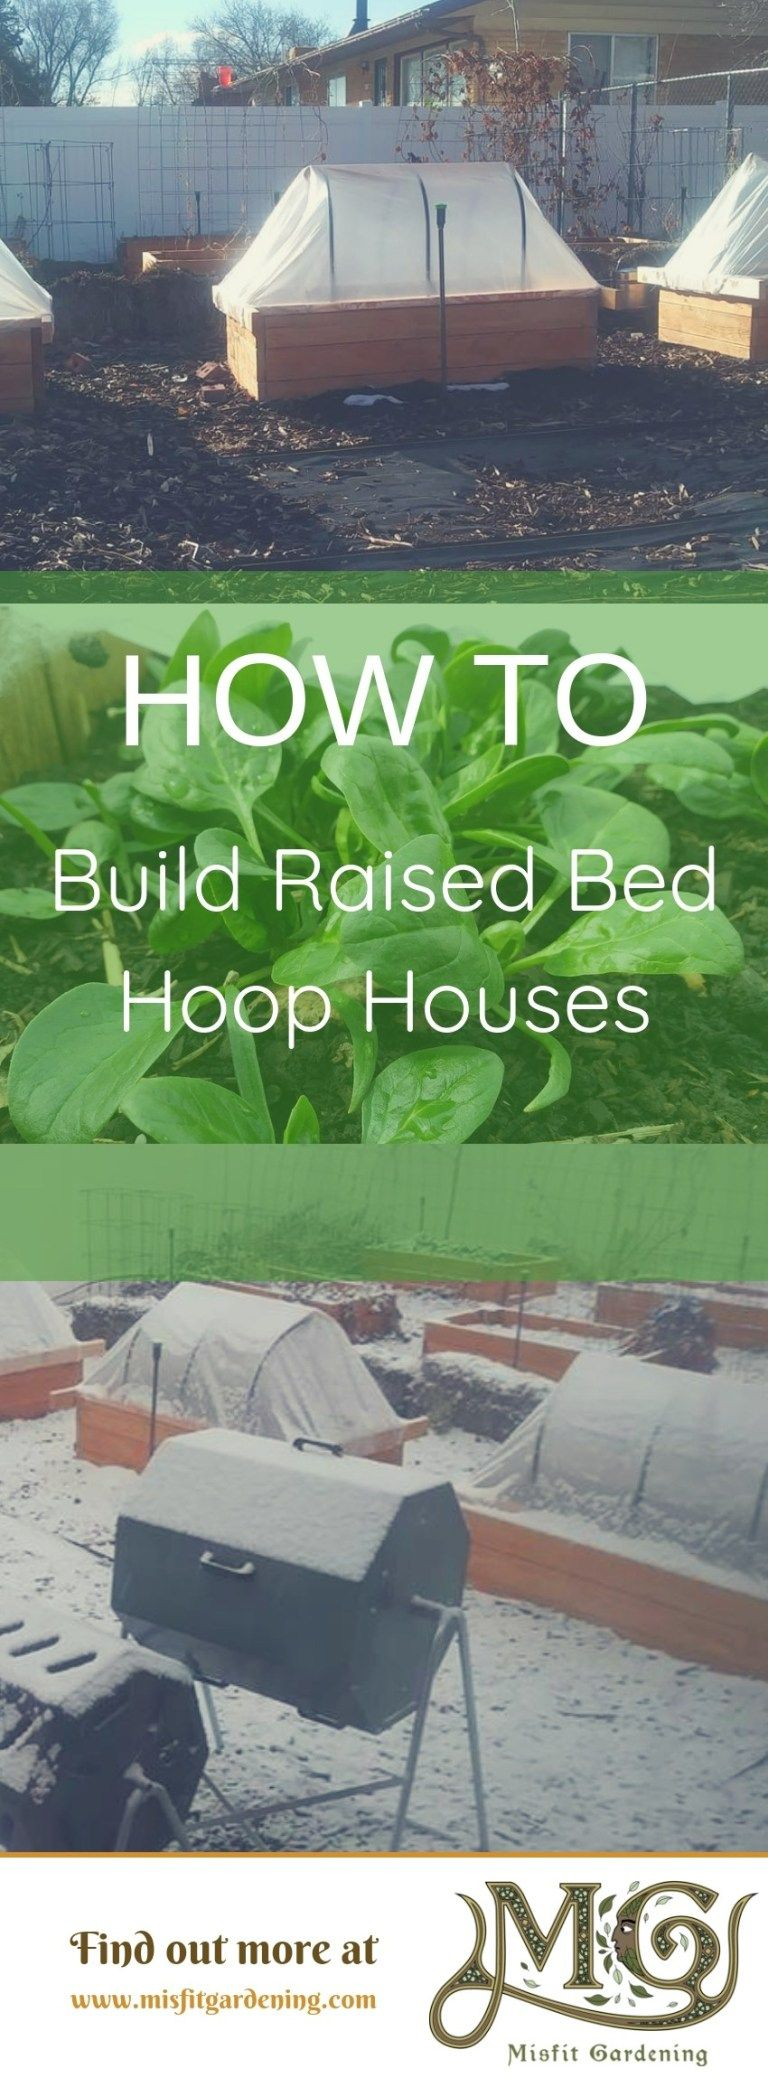 How To Build A Hoop House For Raised Beds Raised beds